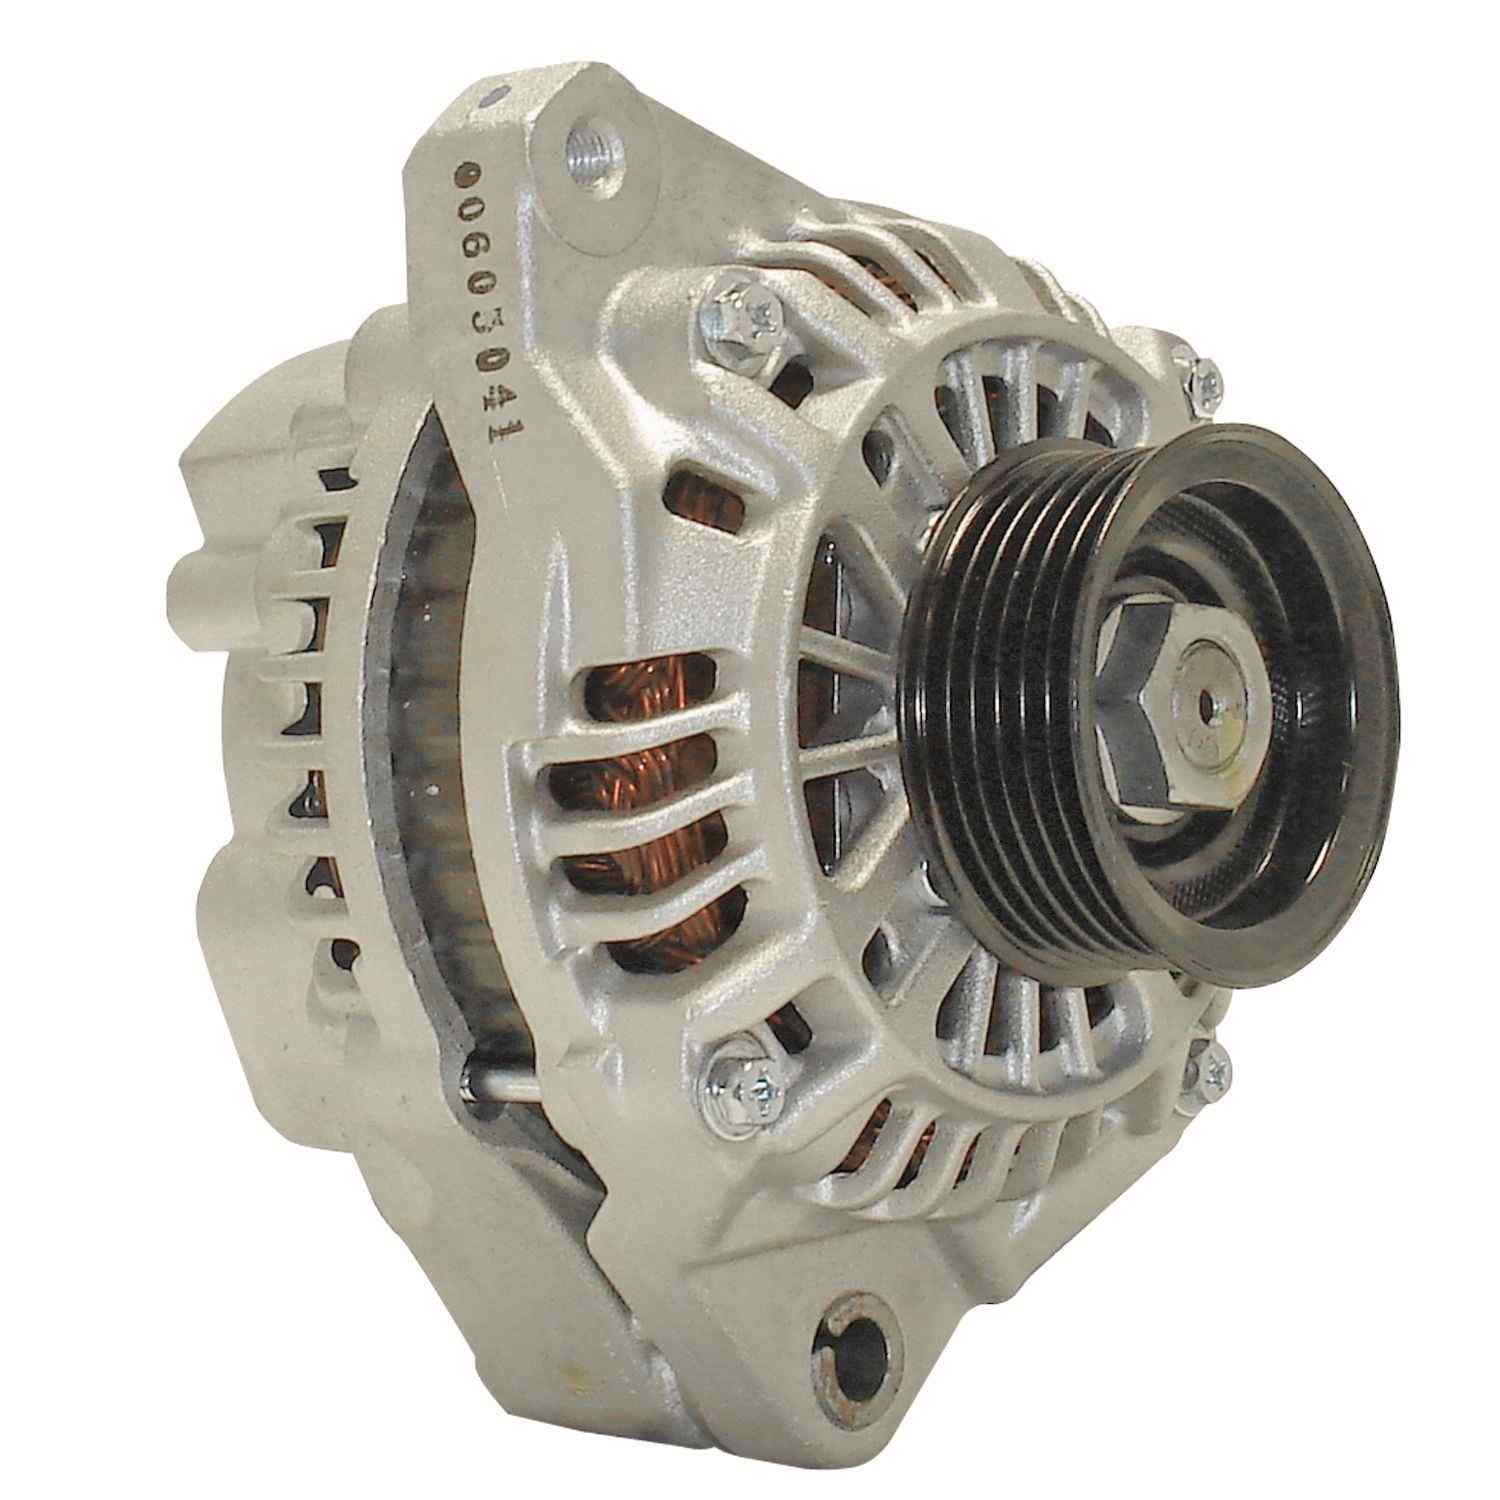 ACDELCO GOLD/PROFESSIONAL - Reman Alternator - DCC 334-1427A